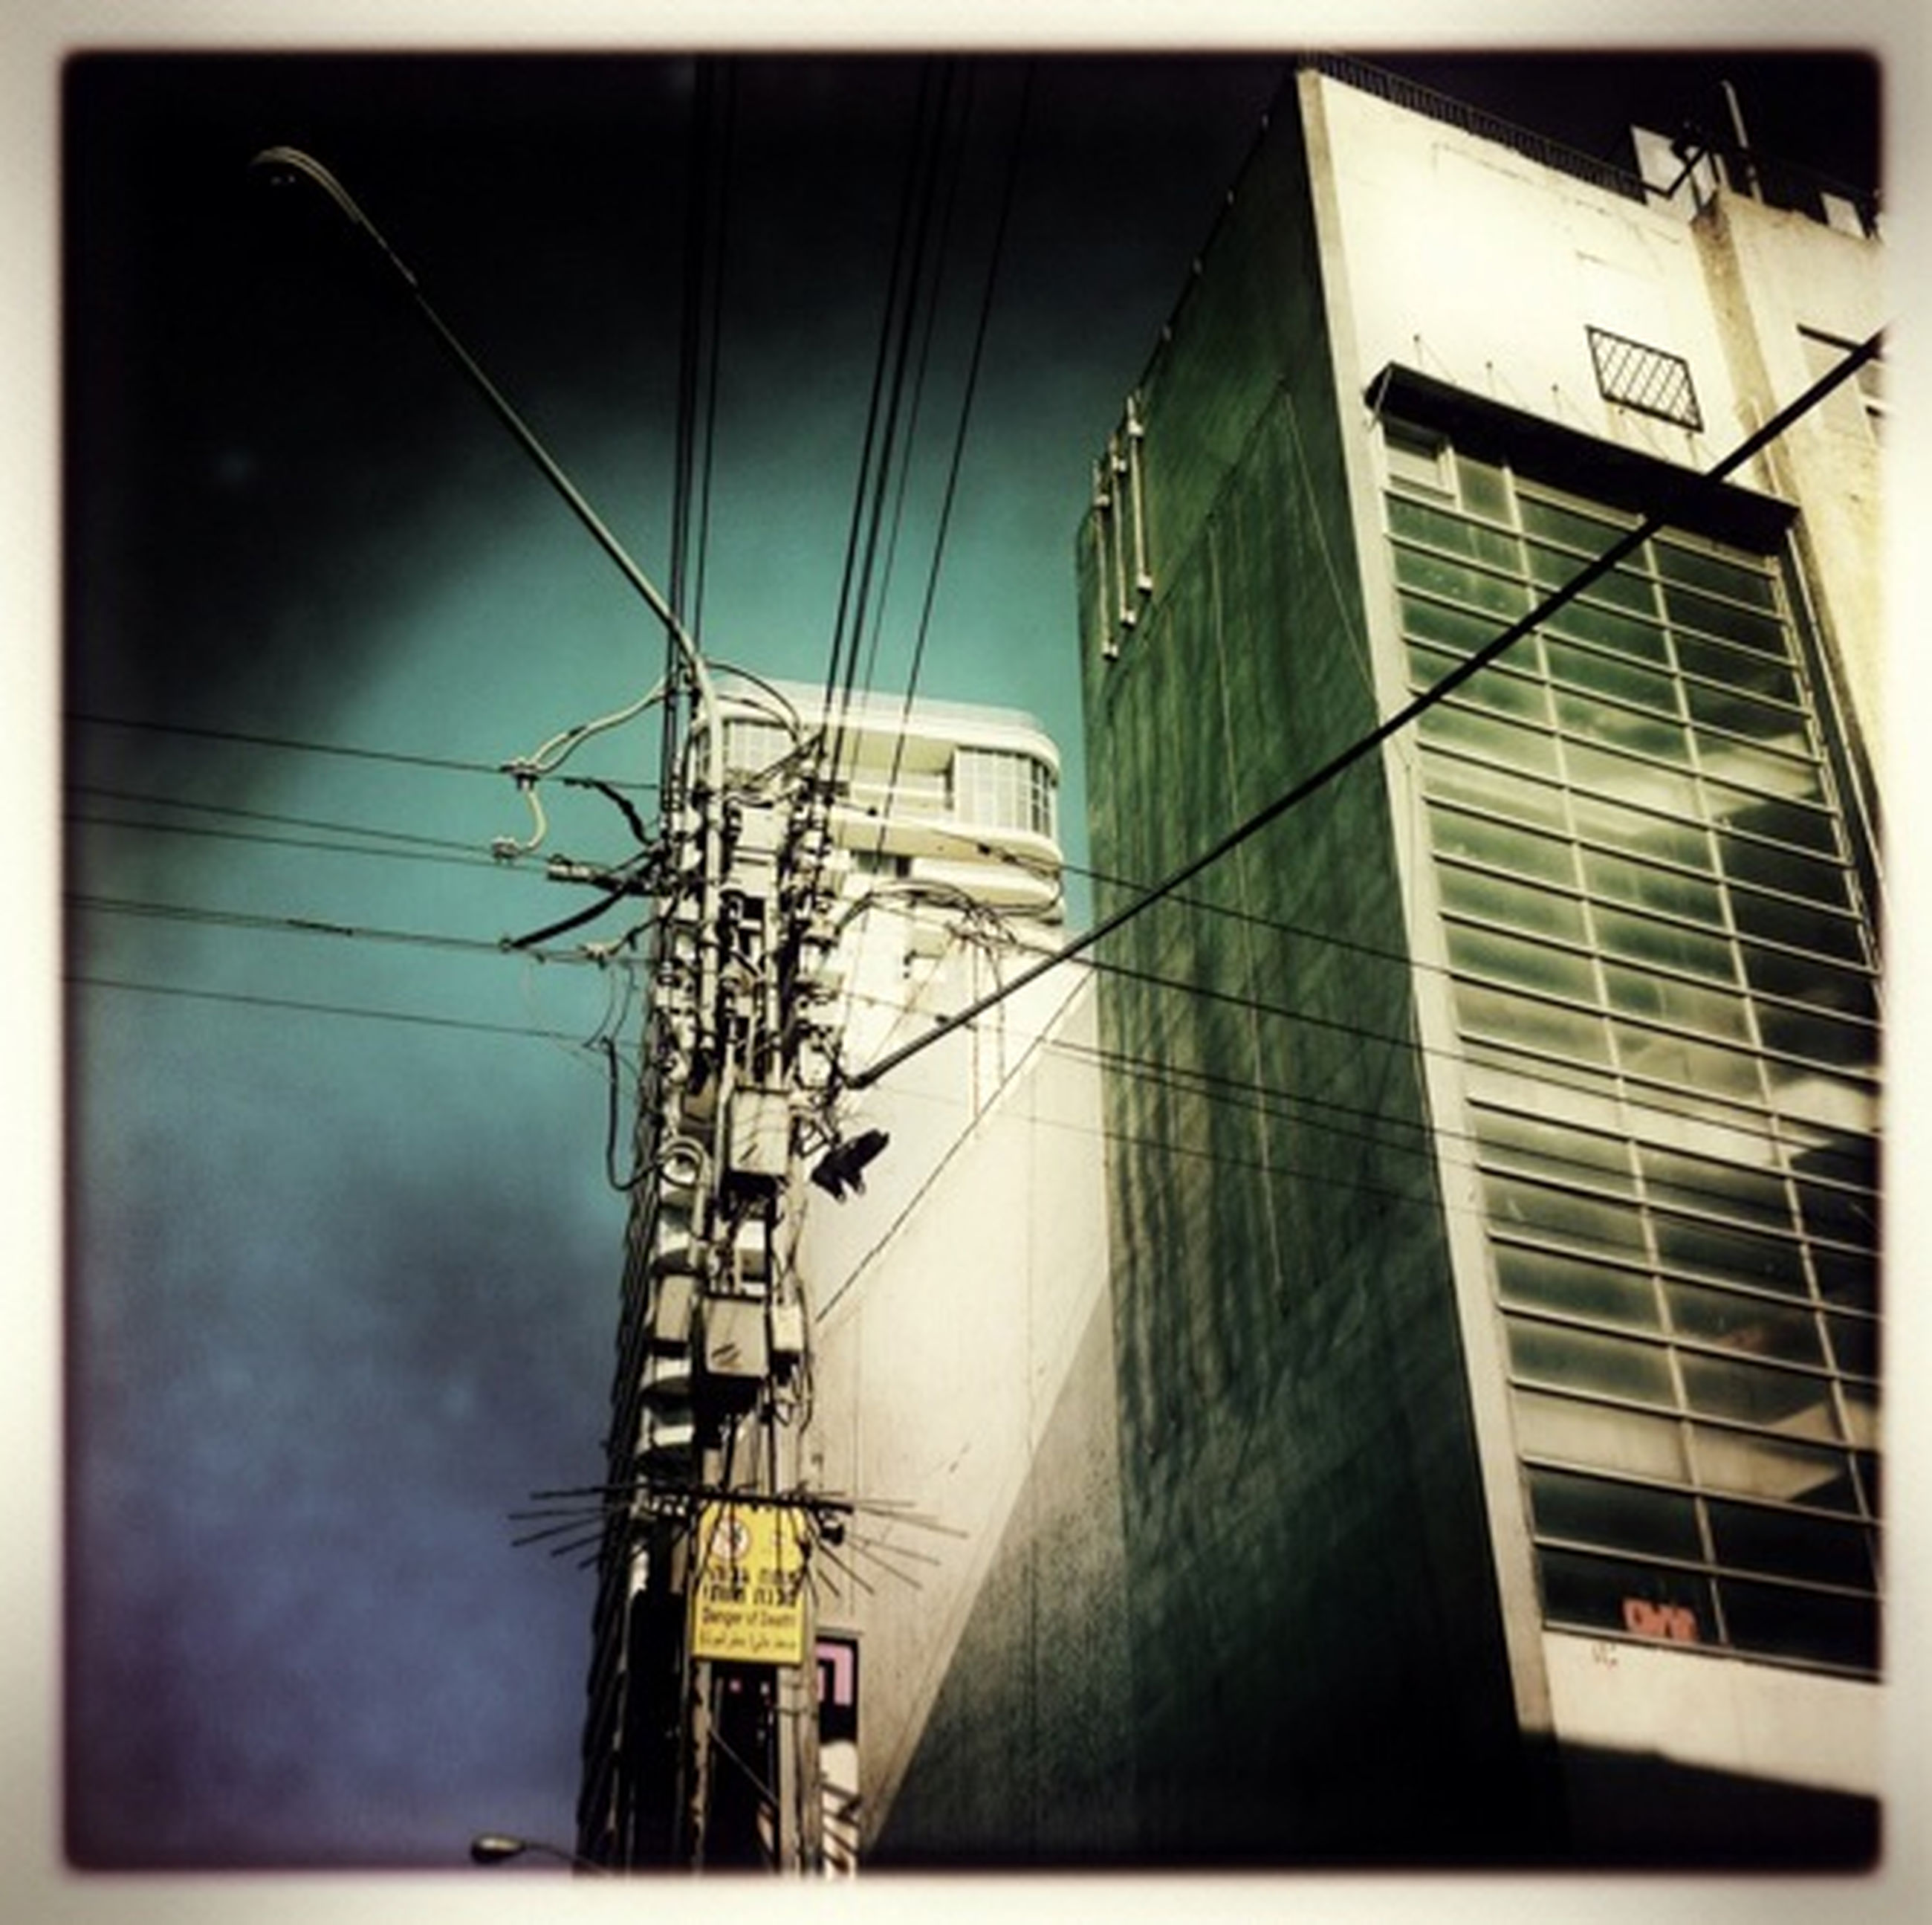 architecture, built structure, building exterior, power line, low angle view, transfer print, electricity pylon, electricity, cable, power supply, auto post production filter, connection, sky, building, fuel and power generation, city, technology, day, outdoors, no people